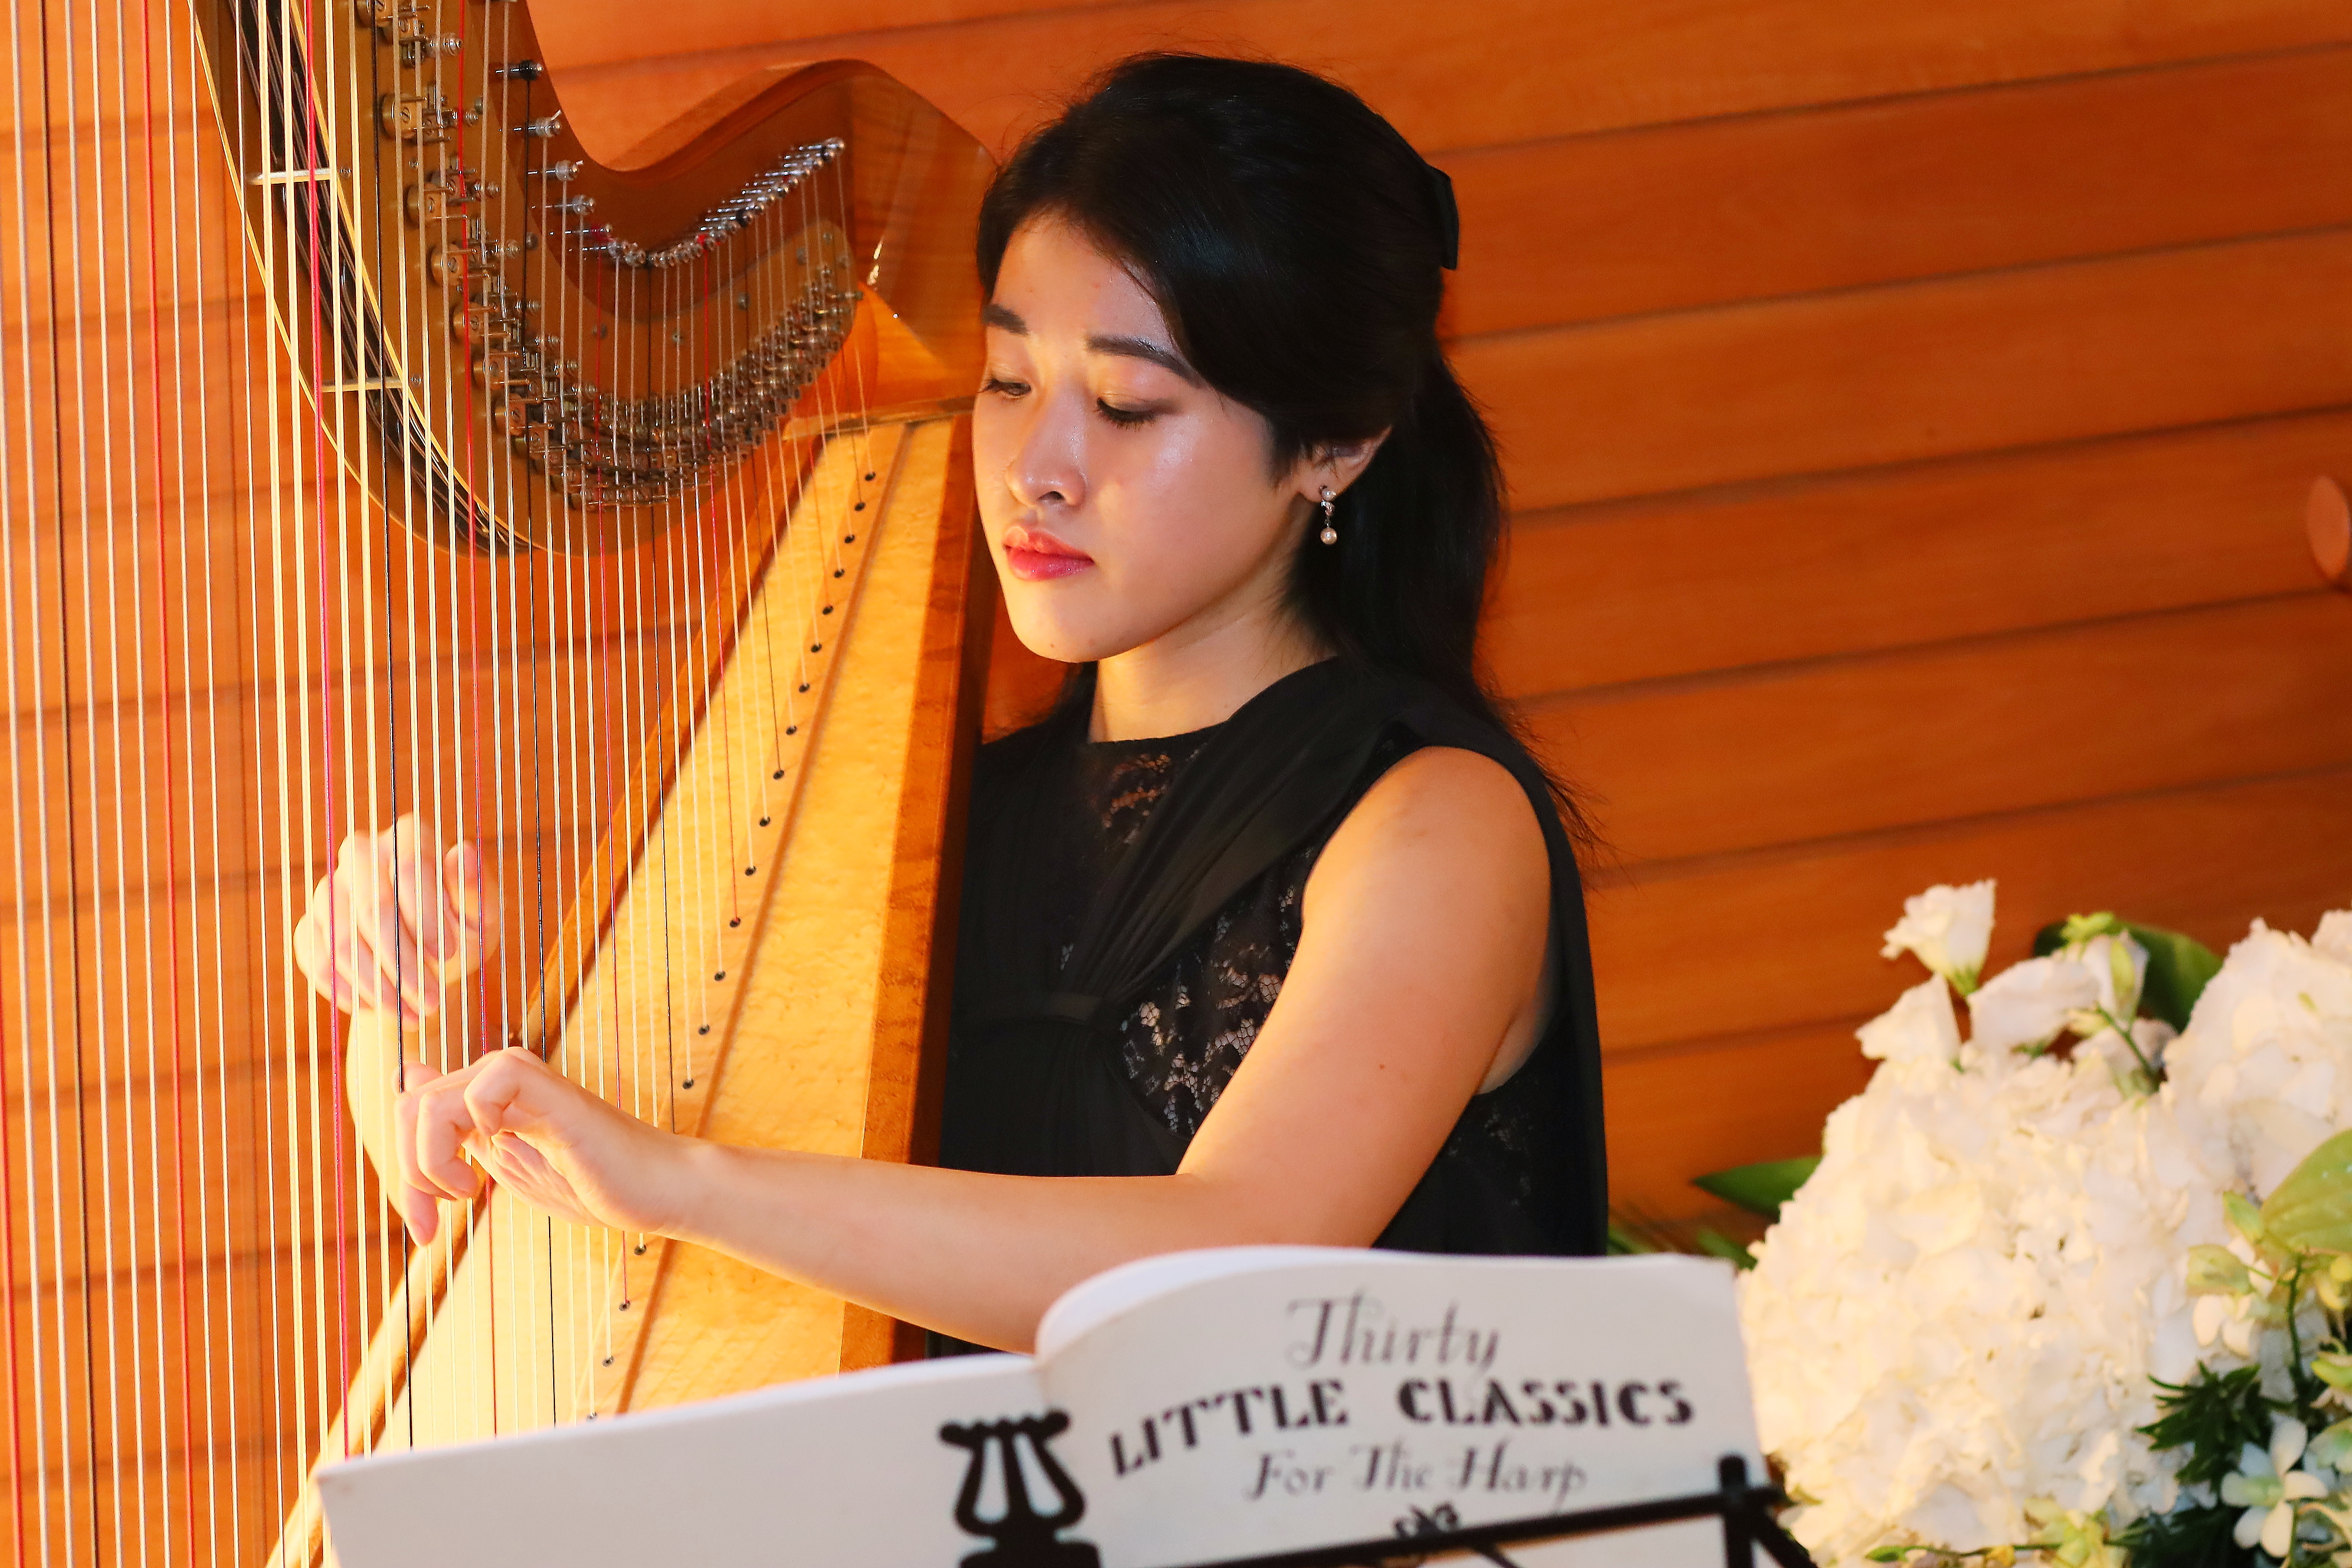 Elegant Solo Harp playing background music for Blancpain event Singapore